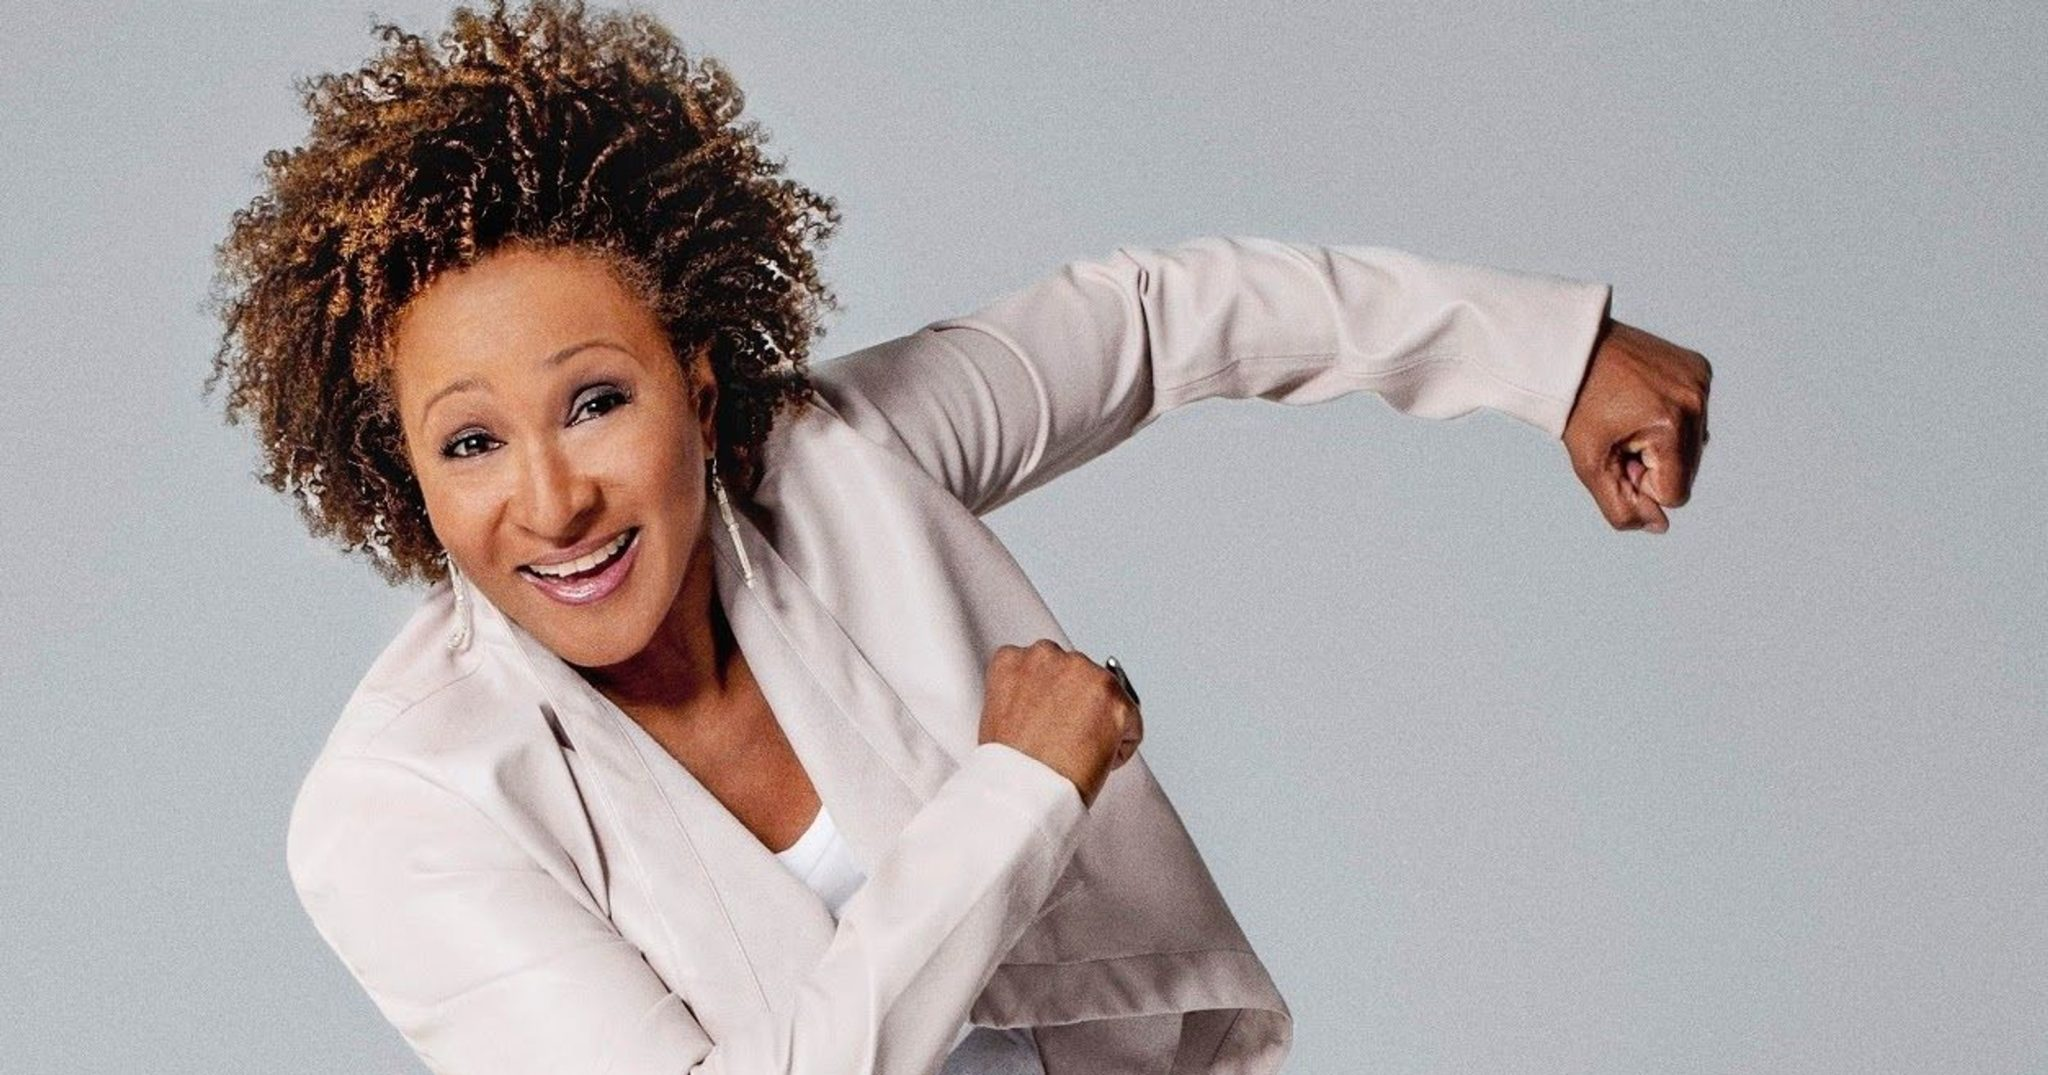 Wanda sykes email prison sex